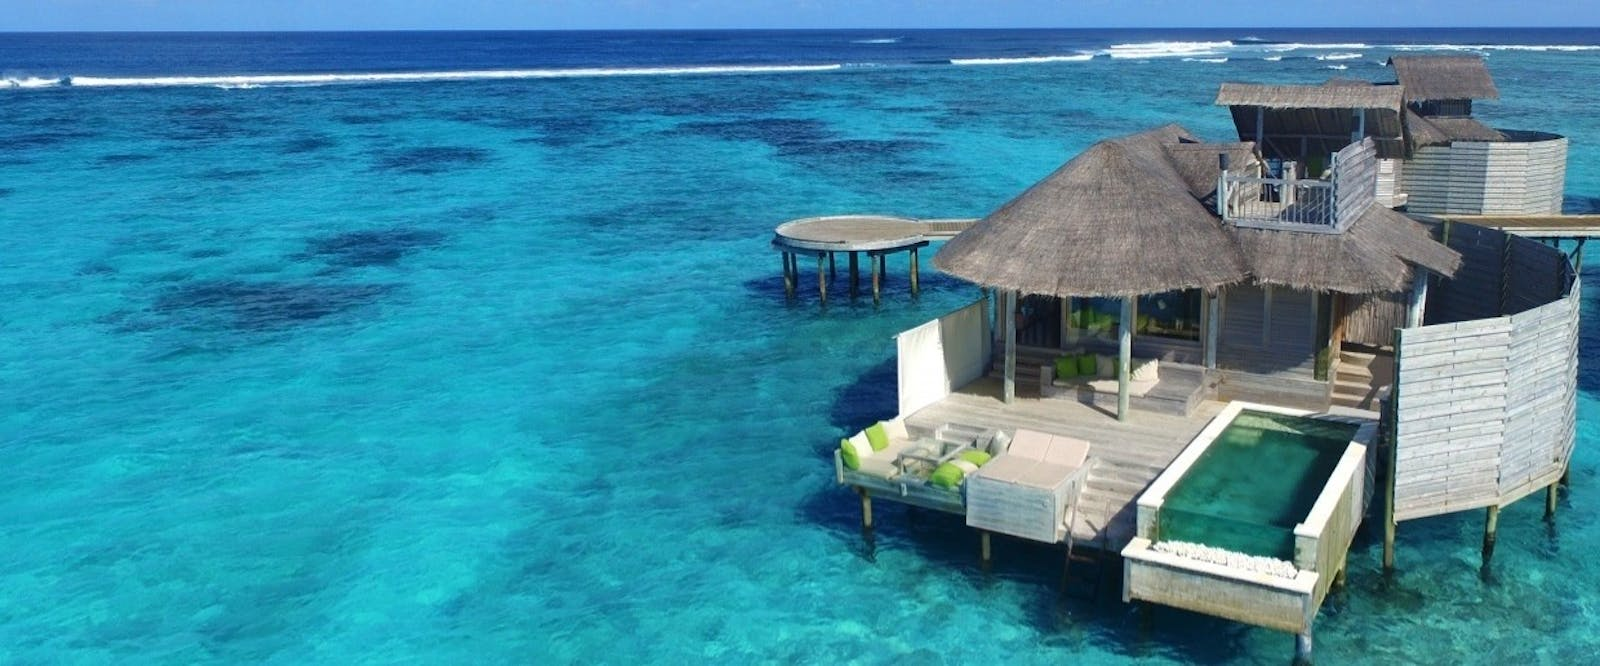 Laamu Water Villa at Six Senses Laamu, Maldives, Indian Ocean